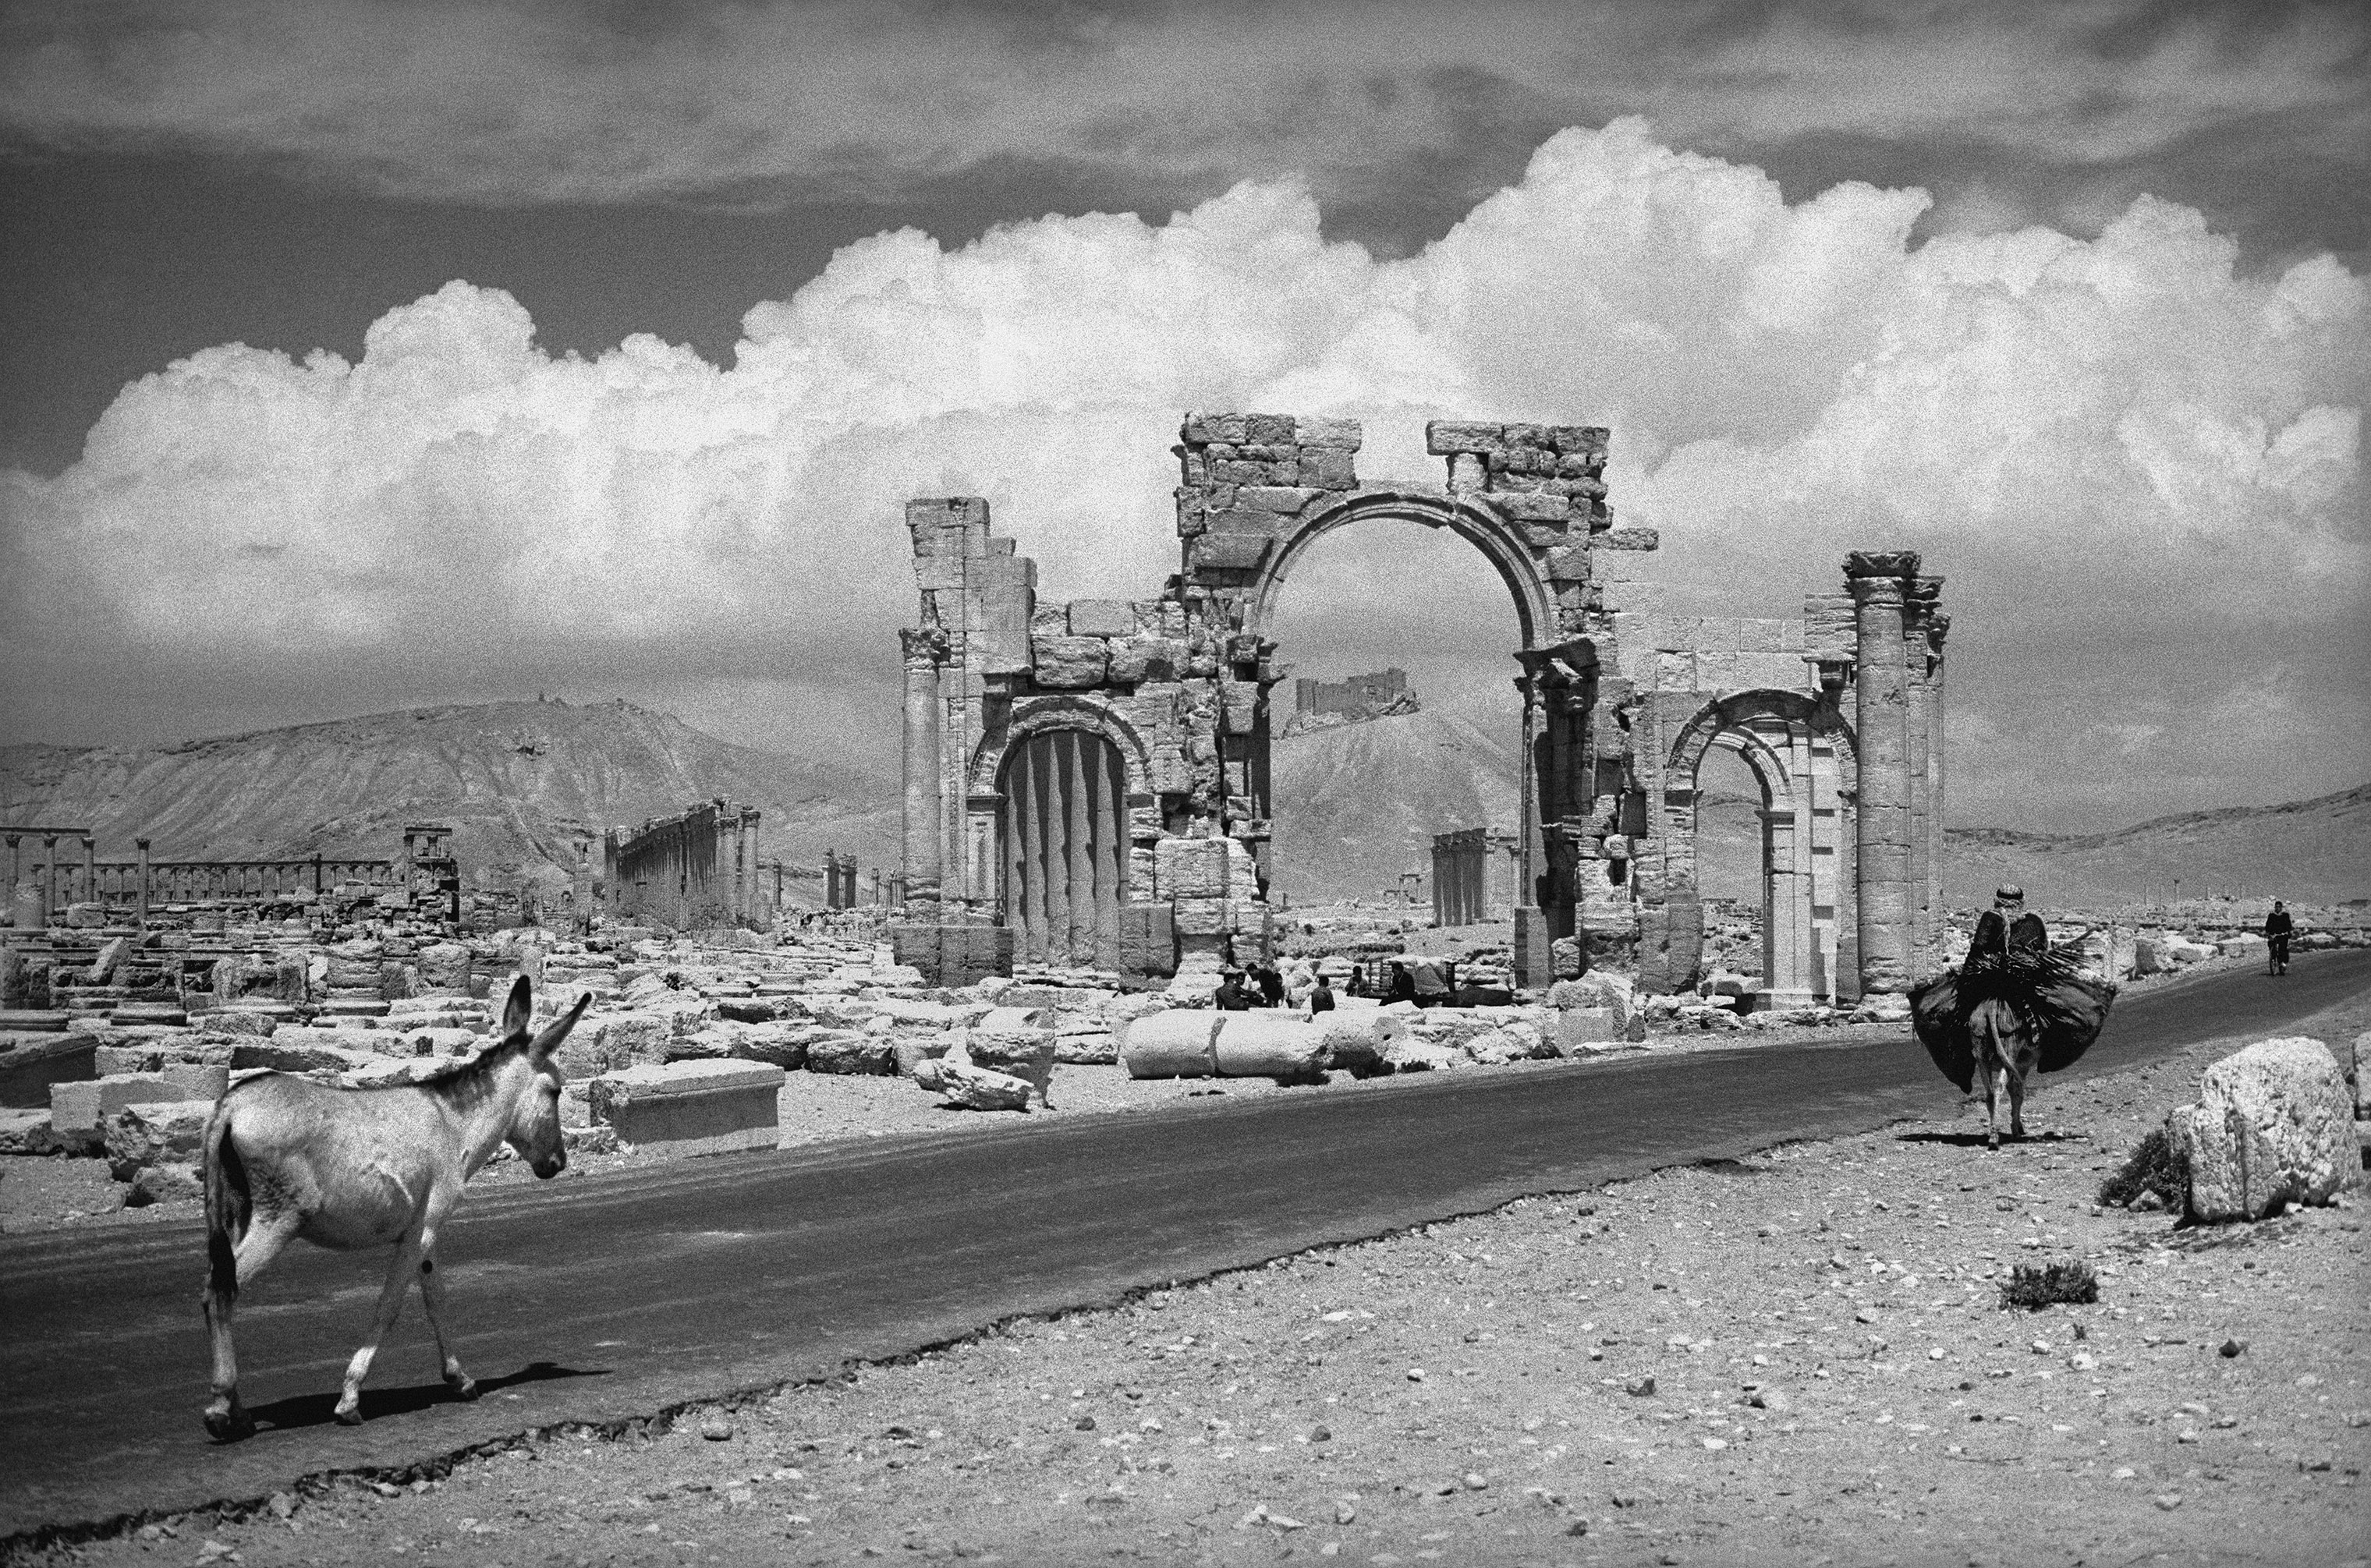 General view of the ruins of Palmyra, Syria. A man on horse back passes as he would have done when Palmyra was originally a trading city in the first century AD. 1966.